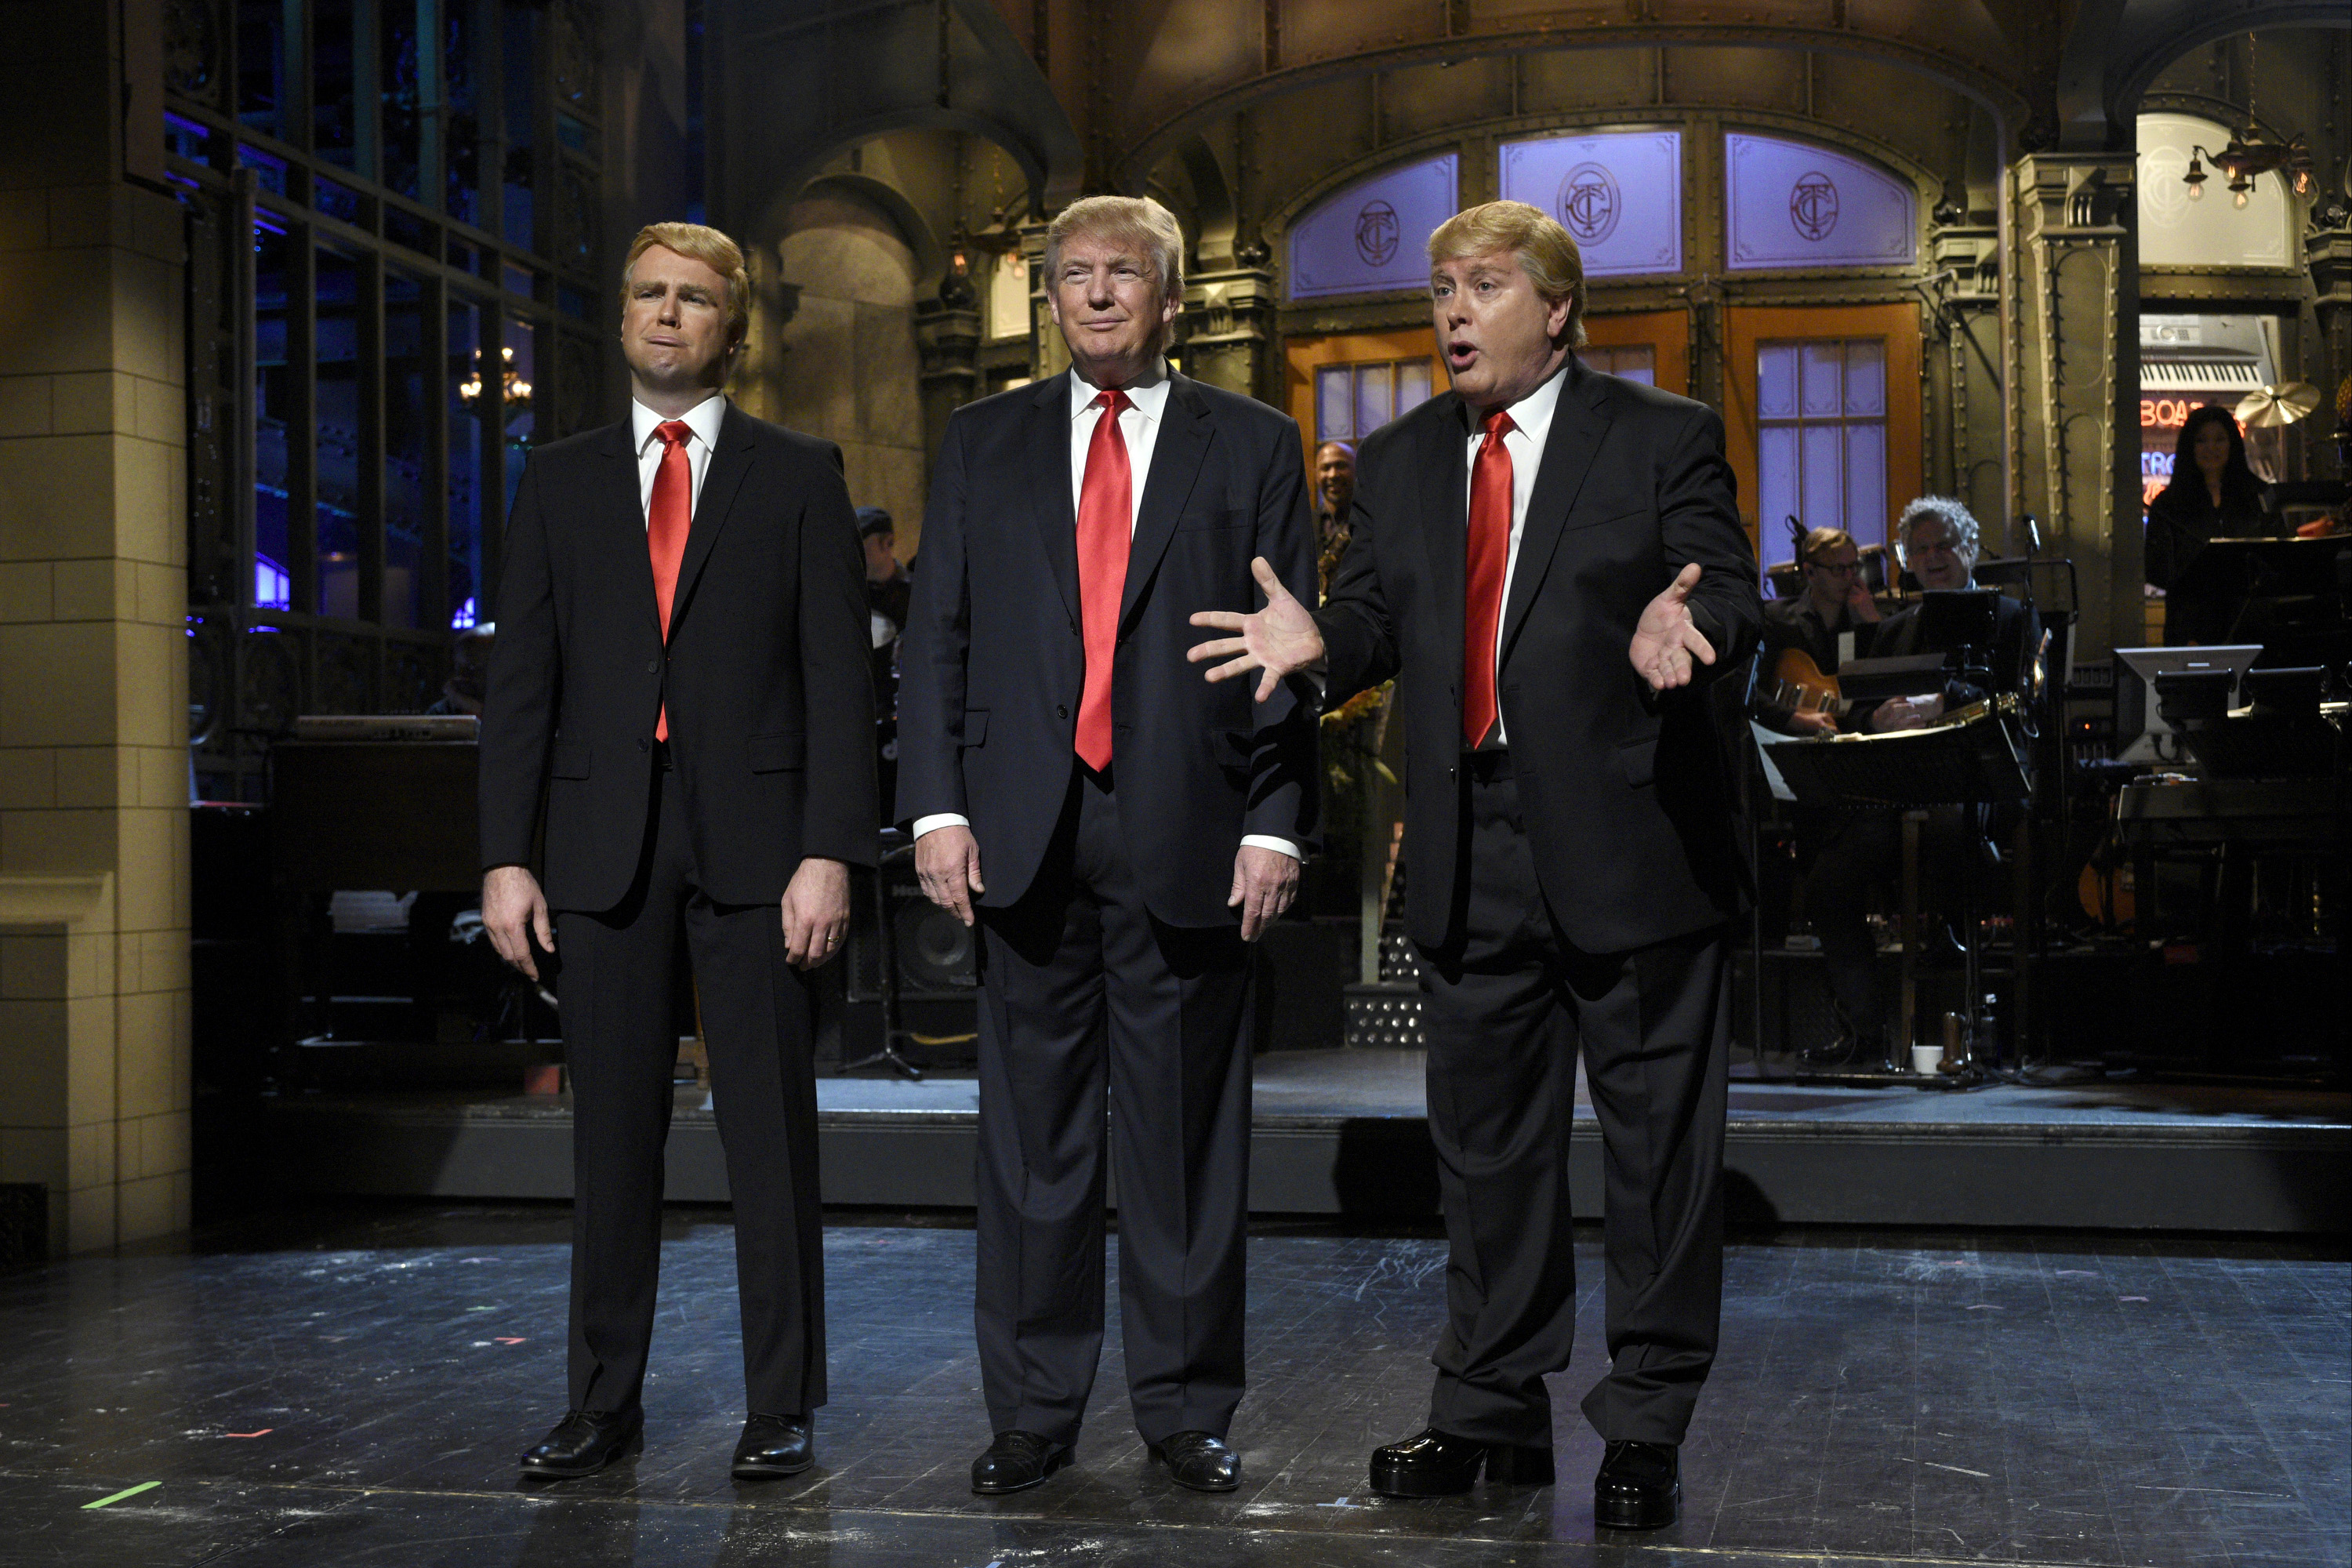 SATURDAY NIGHT LIVE --  Donald Trump  Episode 1687 -- Pictured: (l-r) Taran Killam, Donald Trump, and Darrell Hammond during the monologue on November 7, 2015 -- (Photo by: Dana Edelson/NBC/NBCU Photo Bank via Getty Images)